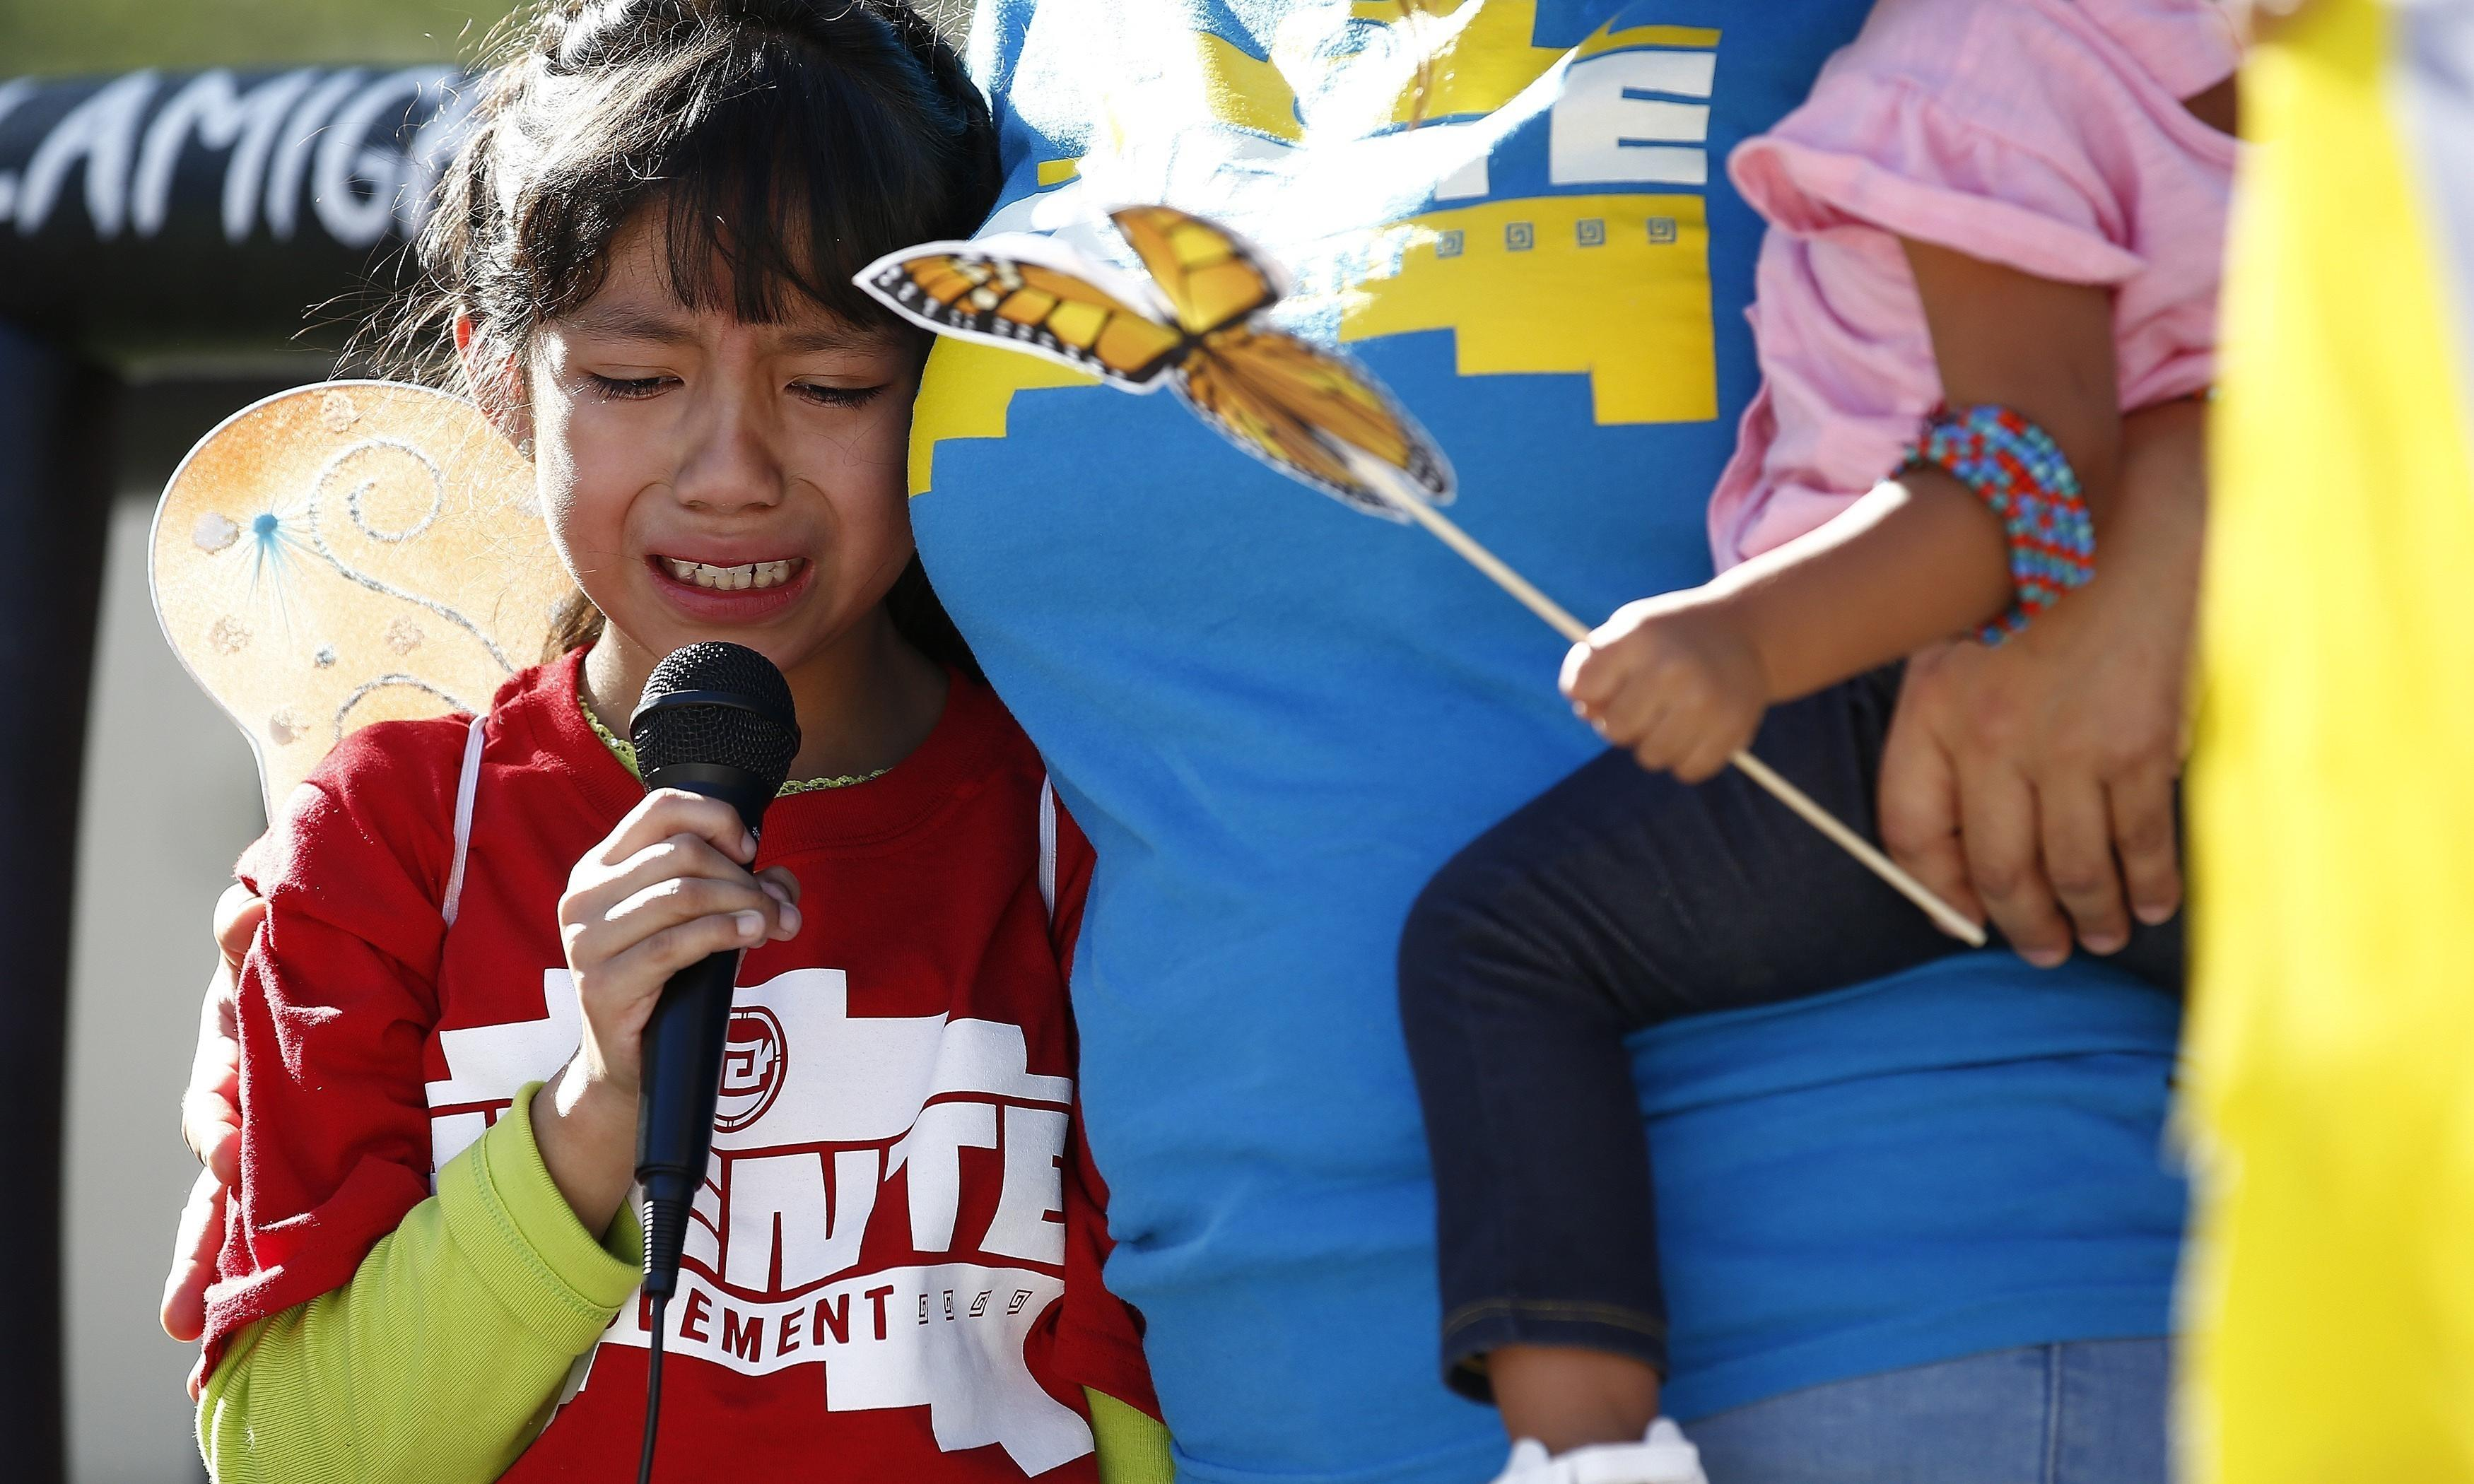 Judge gives Trump administration six months to identify children separated from families